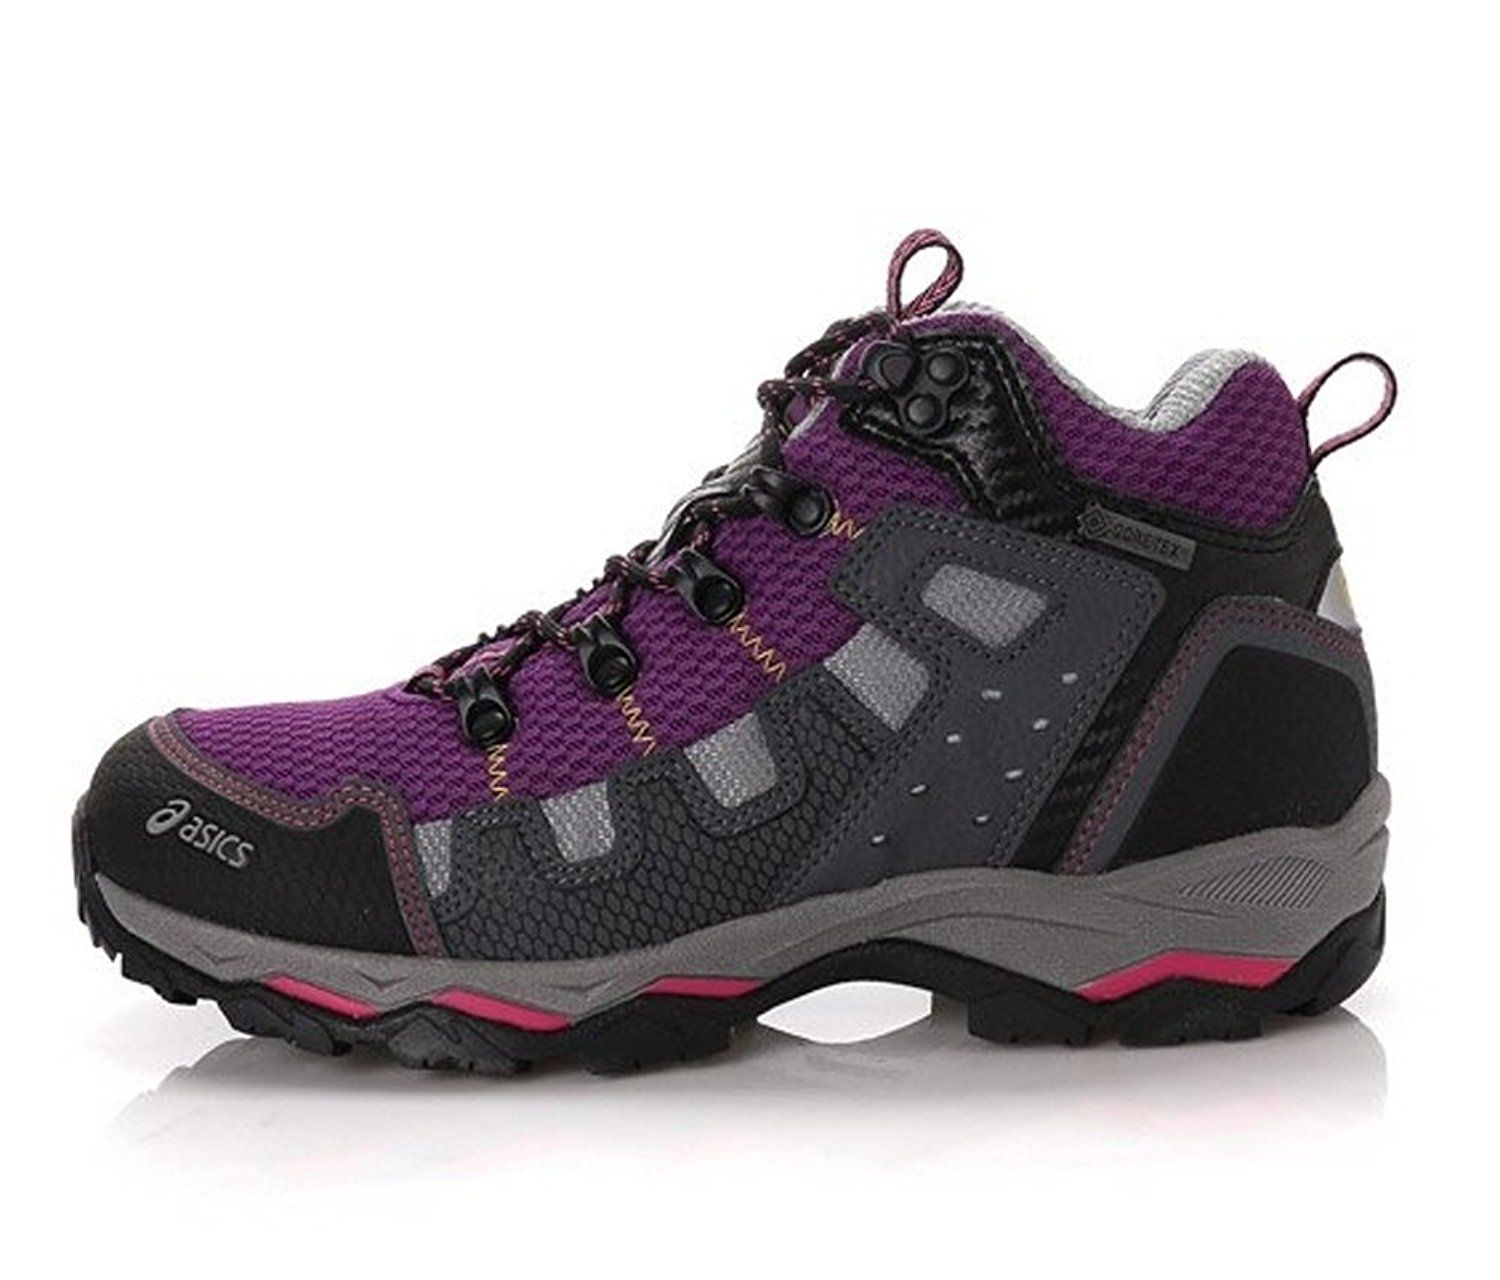 dc71379314b45 Asics Womens GEL-MONTALTO Gore-tex Mid Sports Trekking Trail Hiking ...